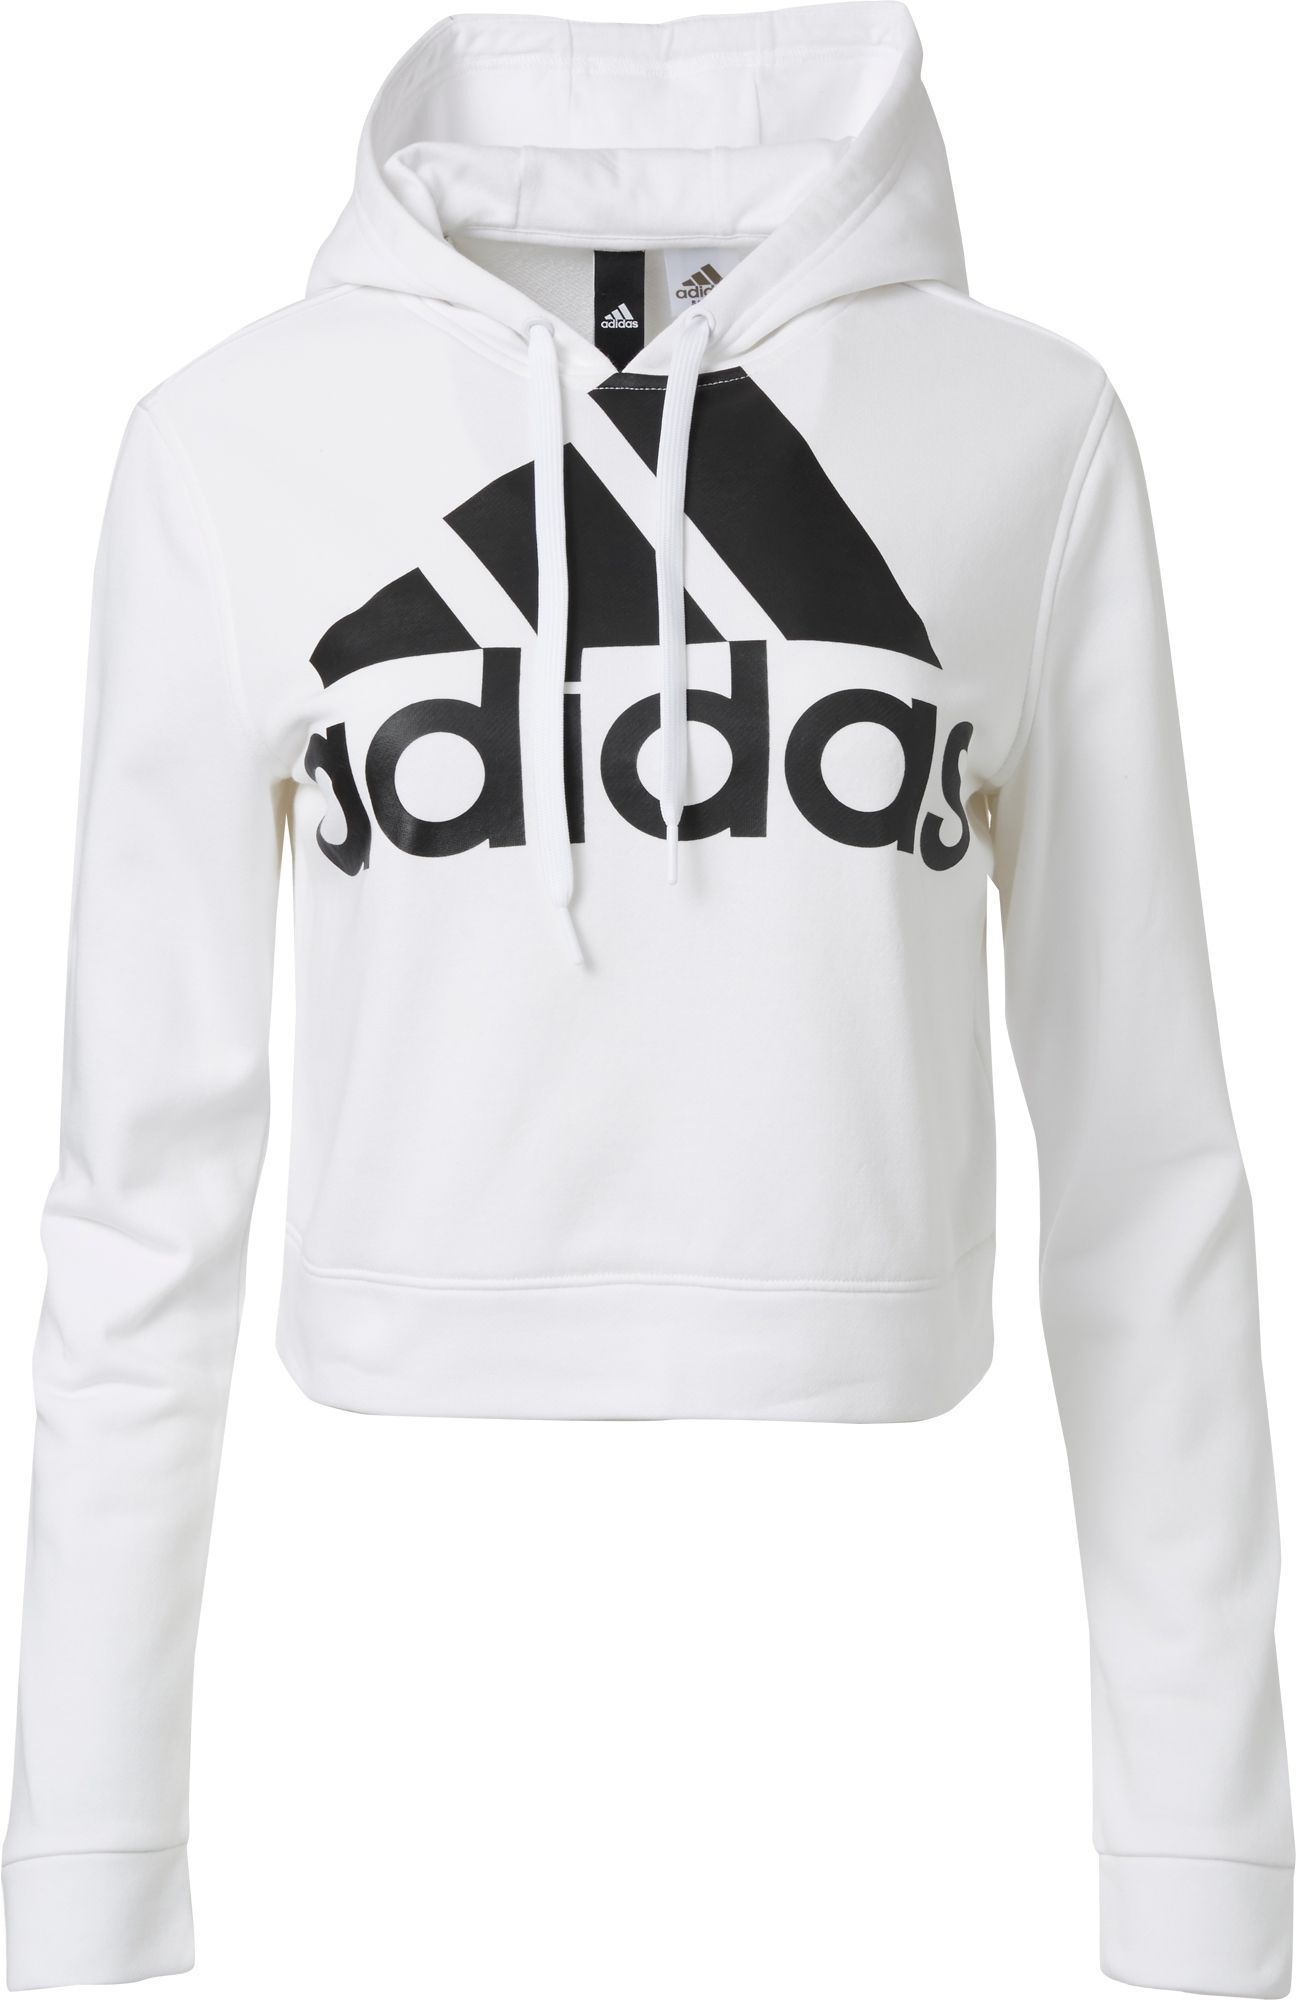 adidas Women s Cropped French Terry Hoodie d8c55279cf2